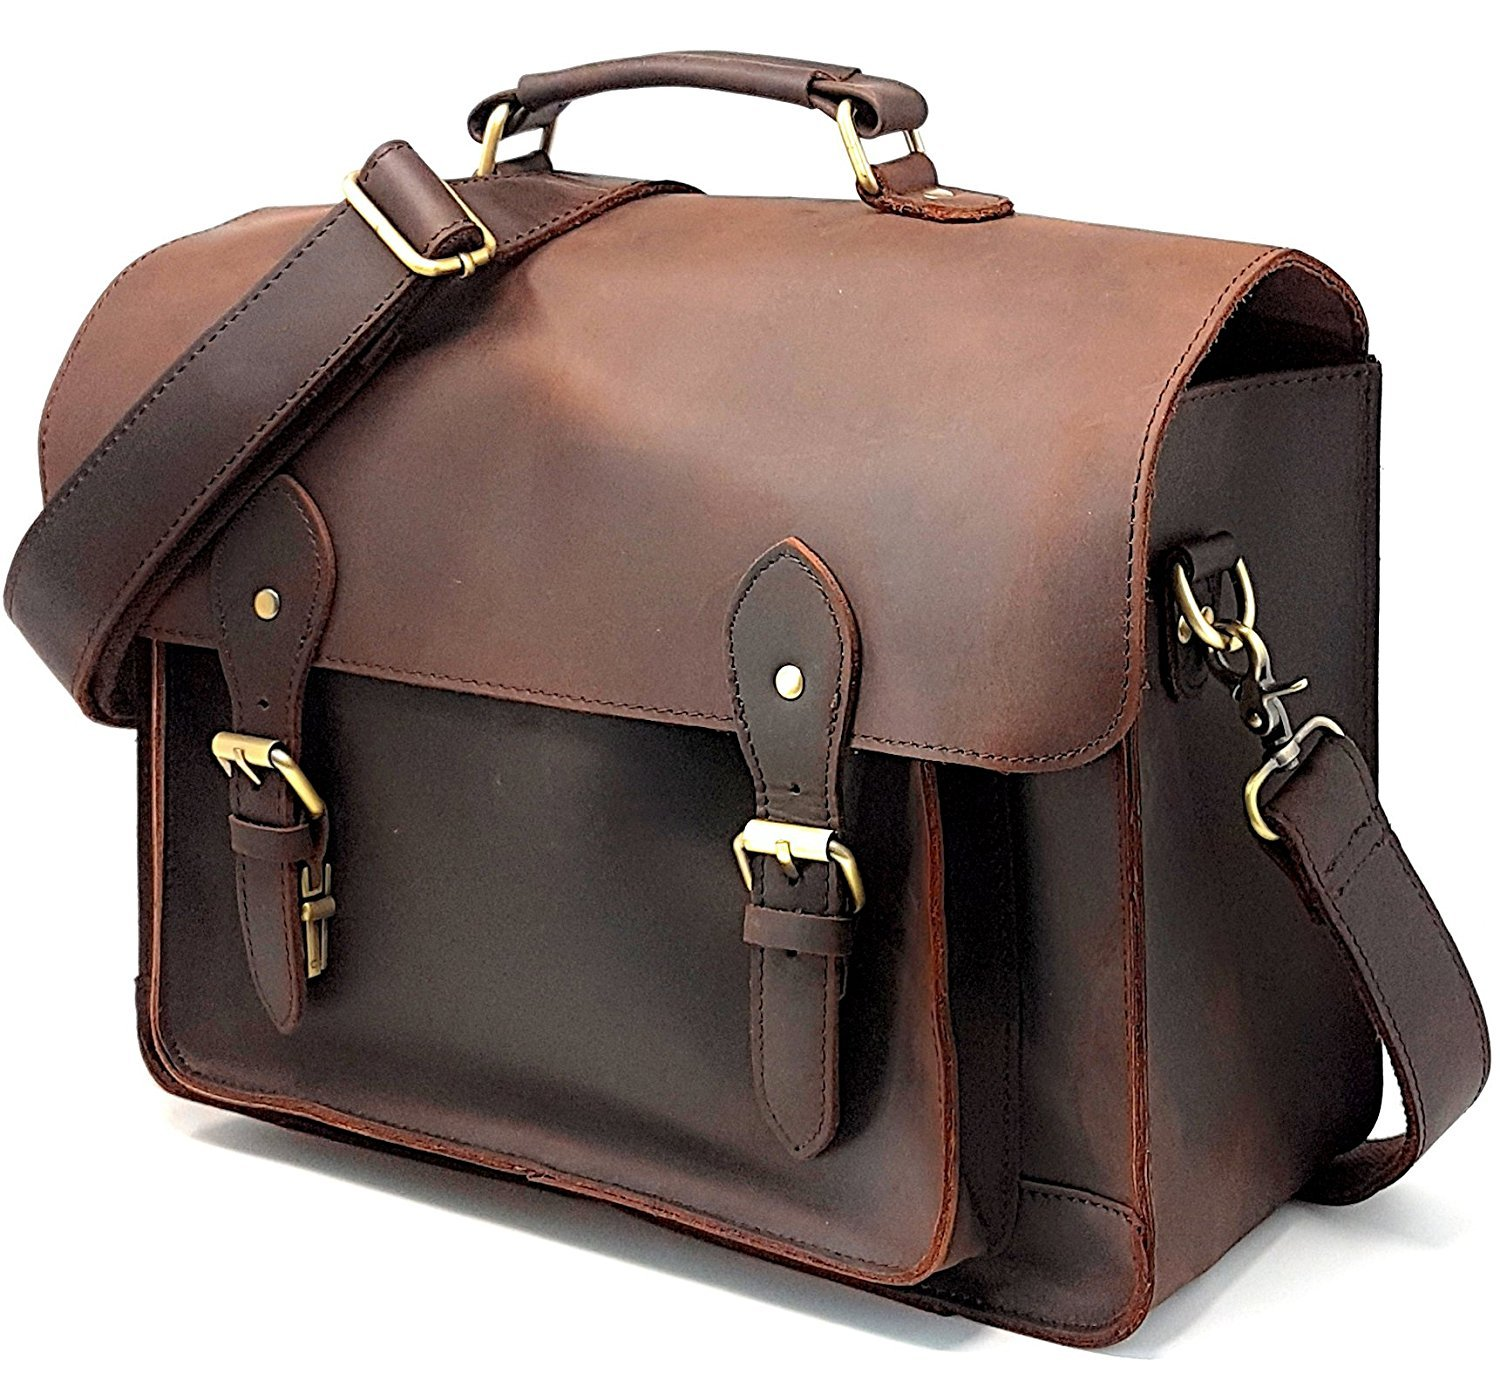 CHI DSLR Laptop Briefcase; Vintage Leather Camera Bag with Removable Insert; Handcrafted with Genuine Leather; Fits Professional Size DSLR with lens For Canon Nikon Sony;